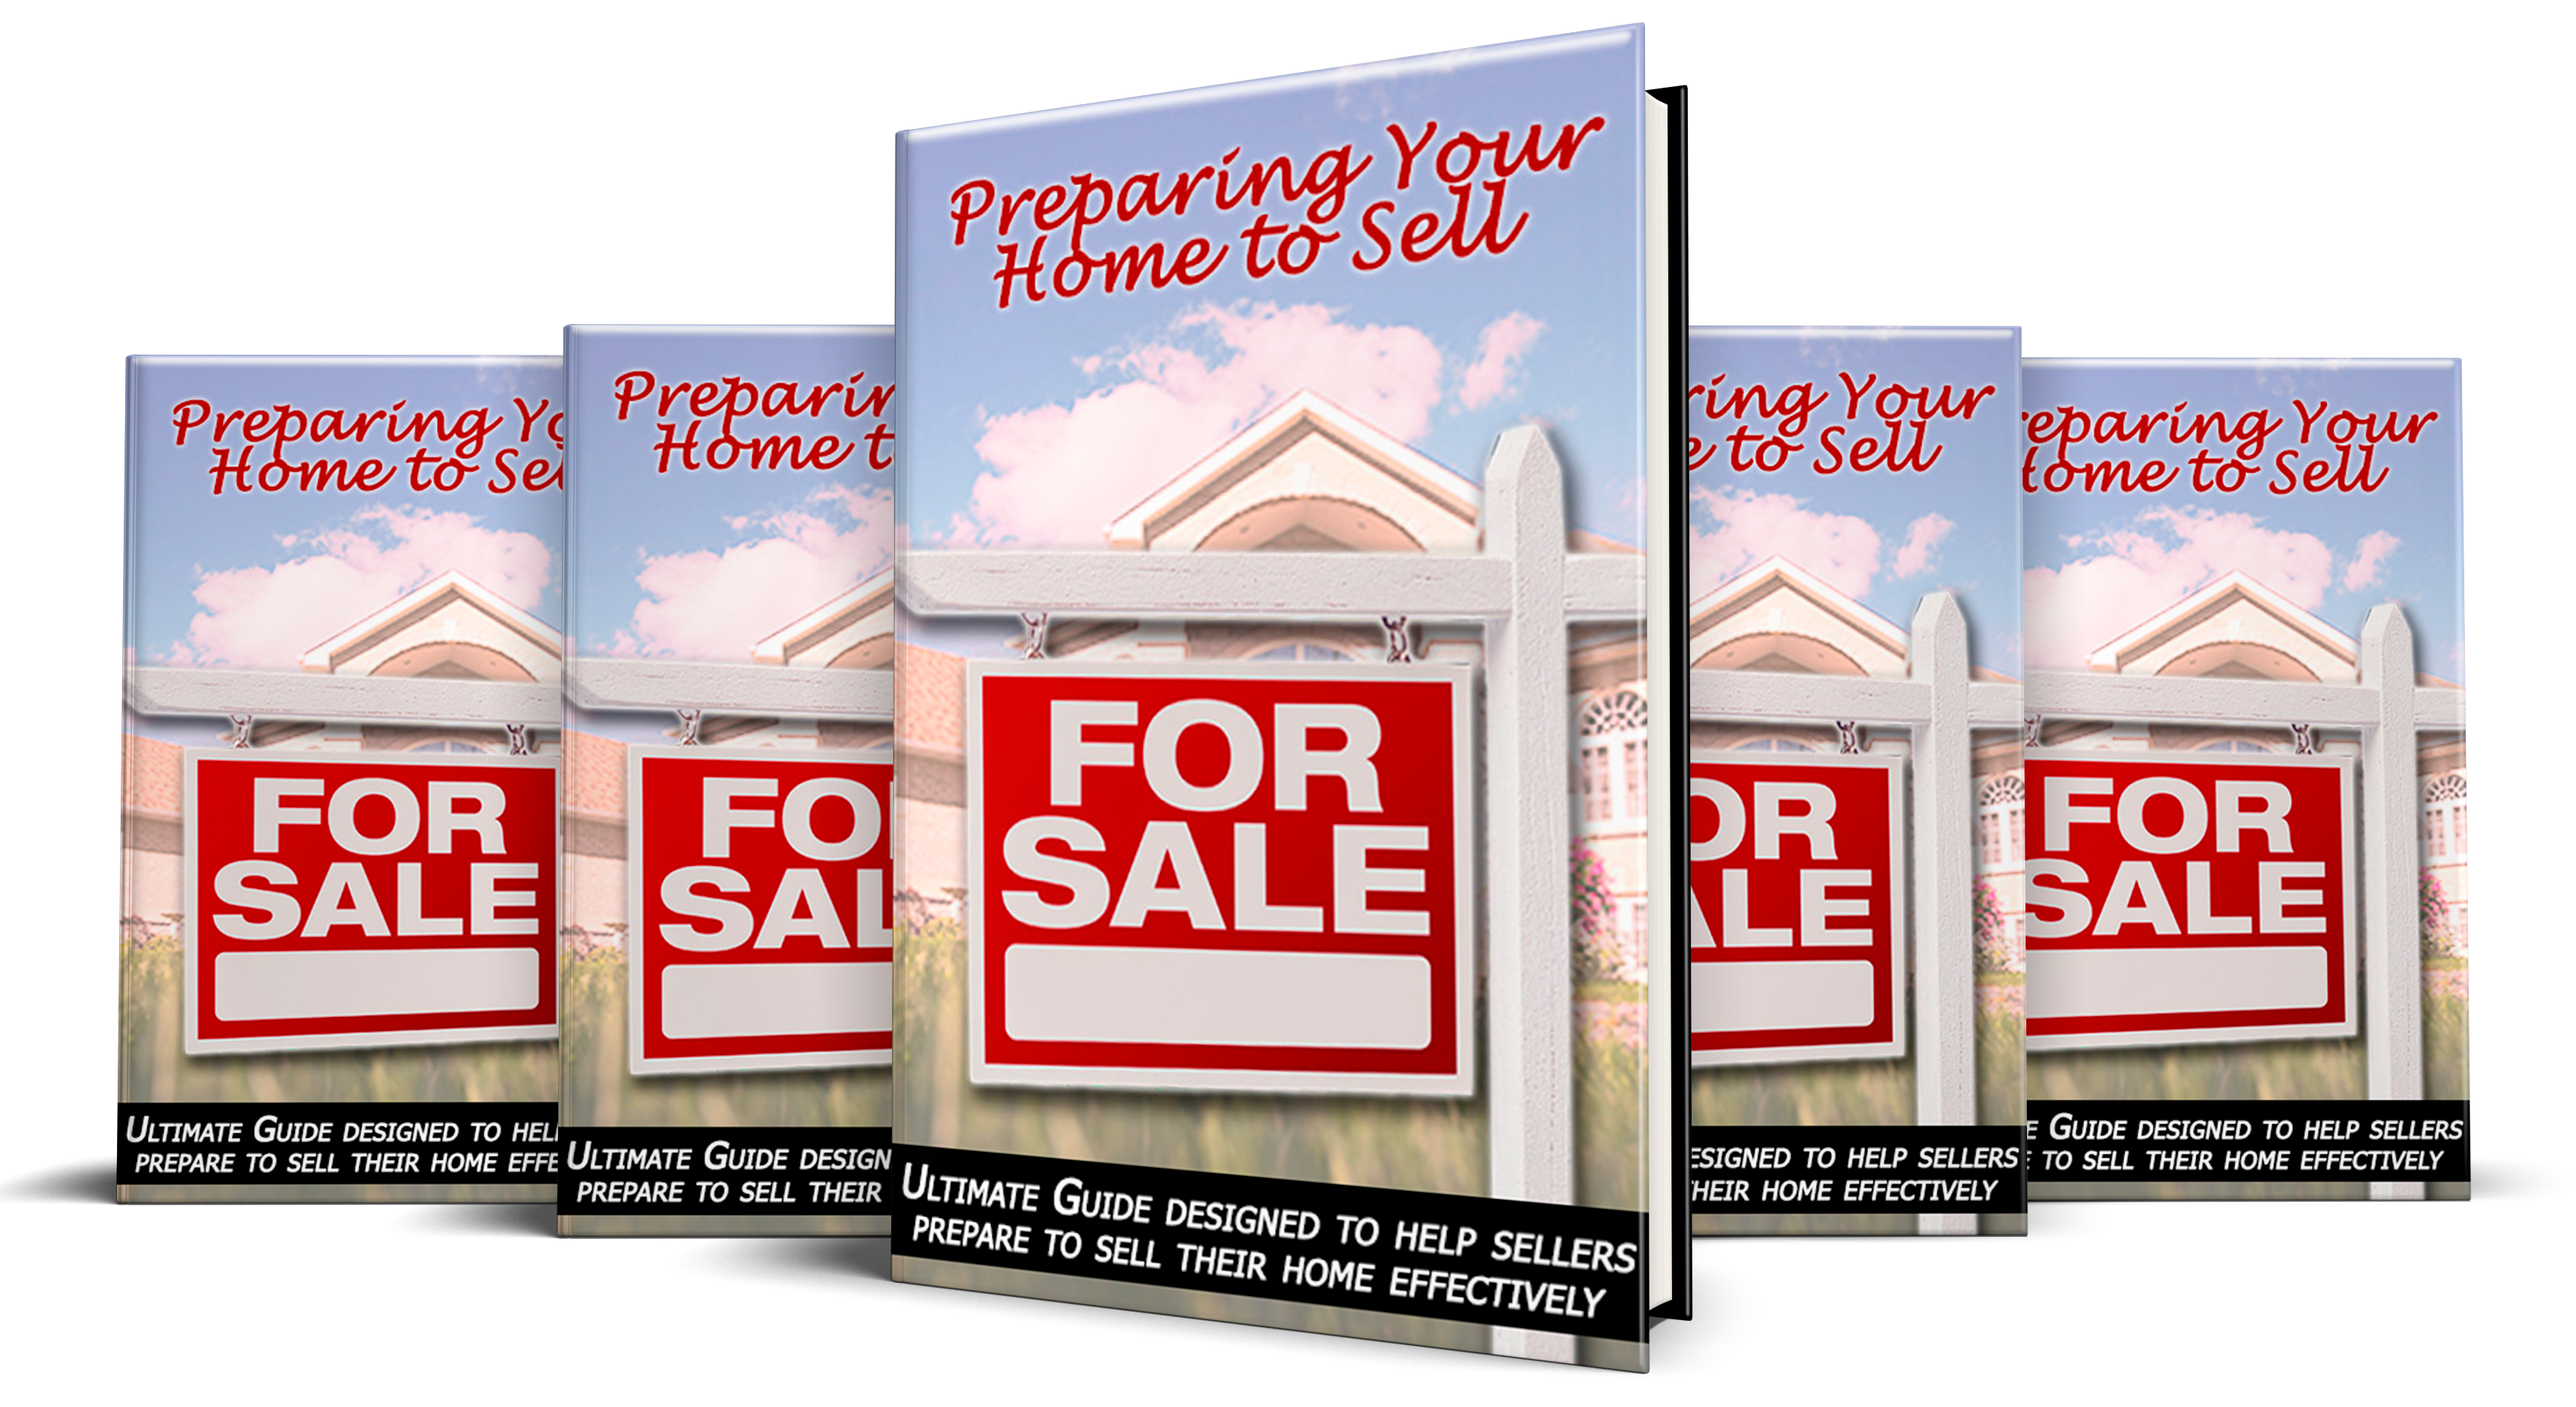 PreparingYourHomeToSell 01